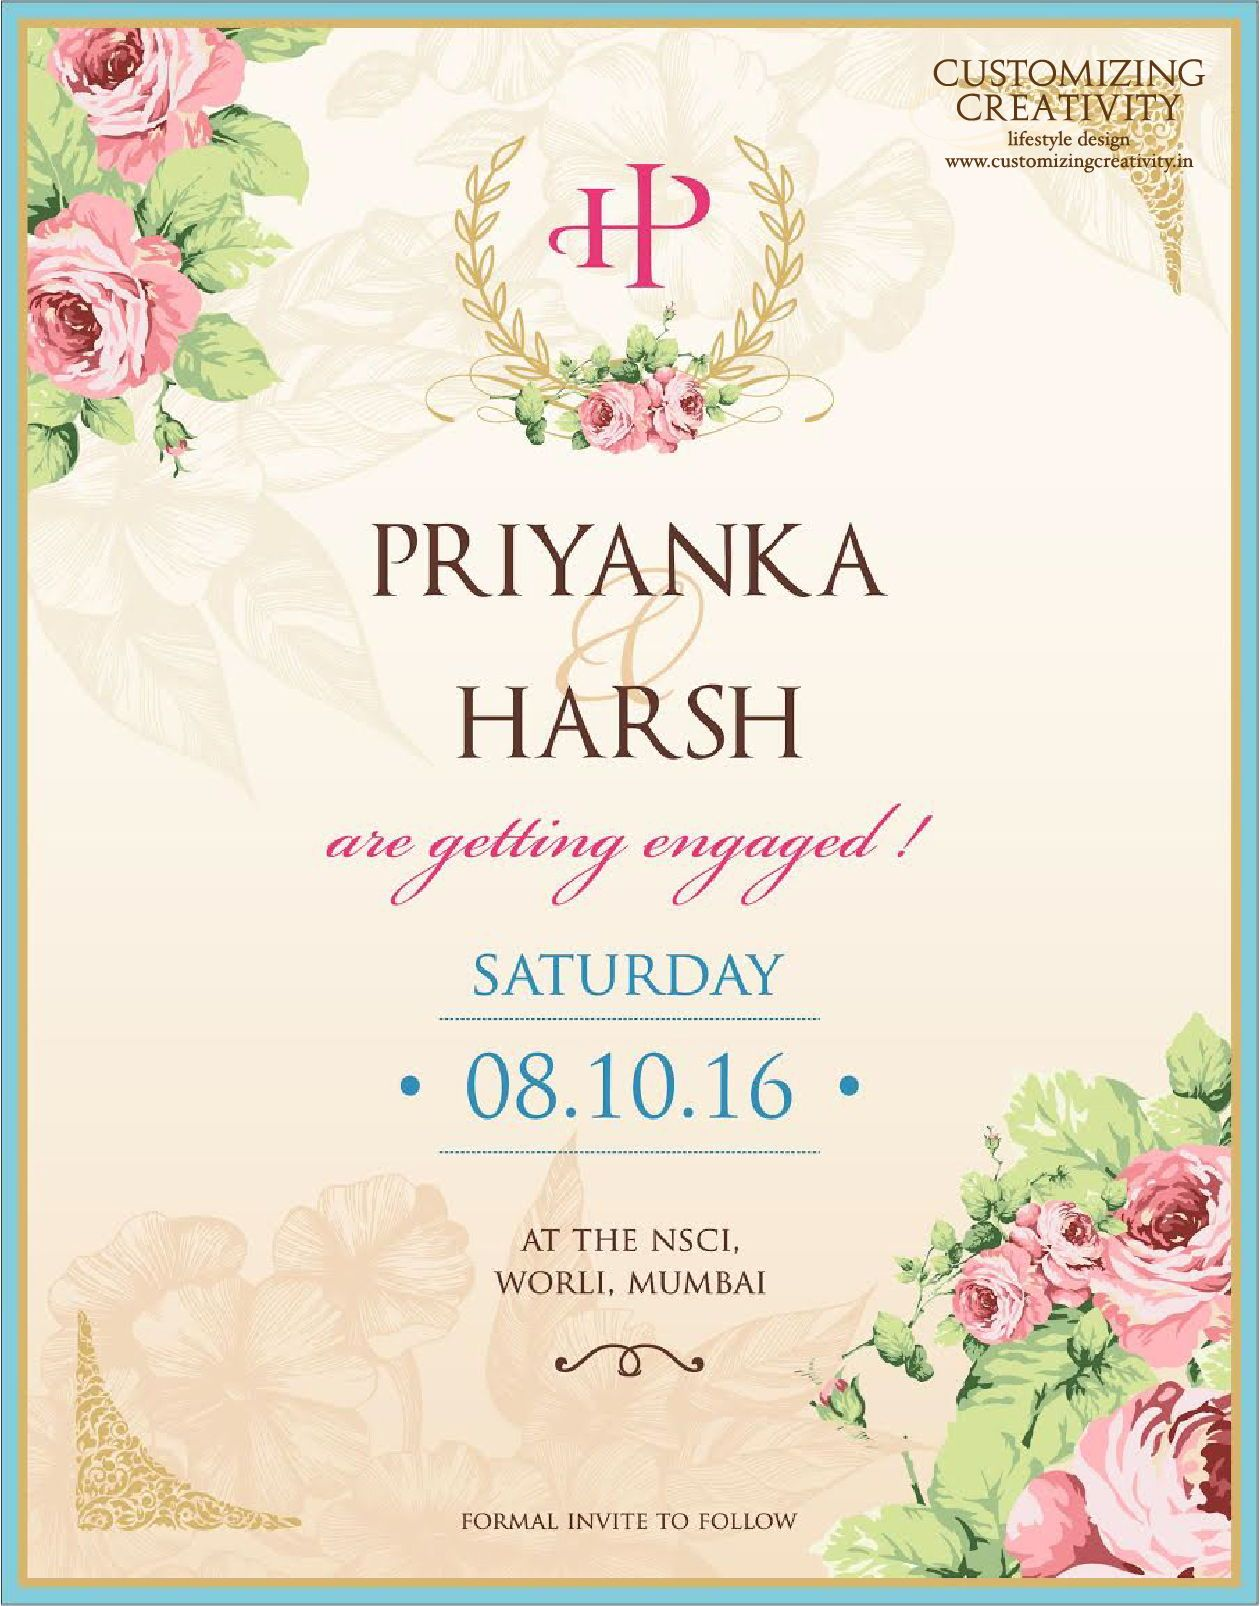 Wedding invitation cards, Indian wedding cards, invites